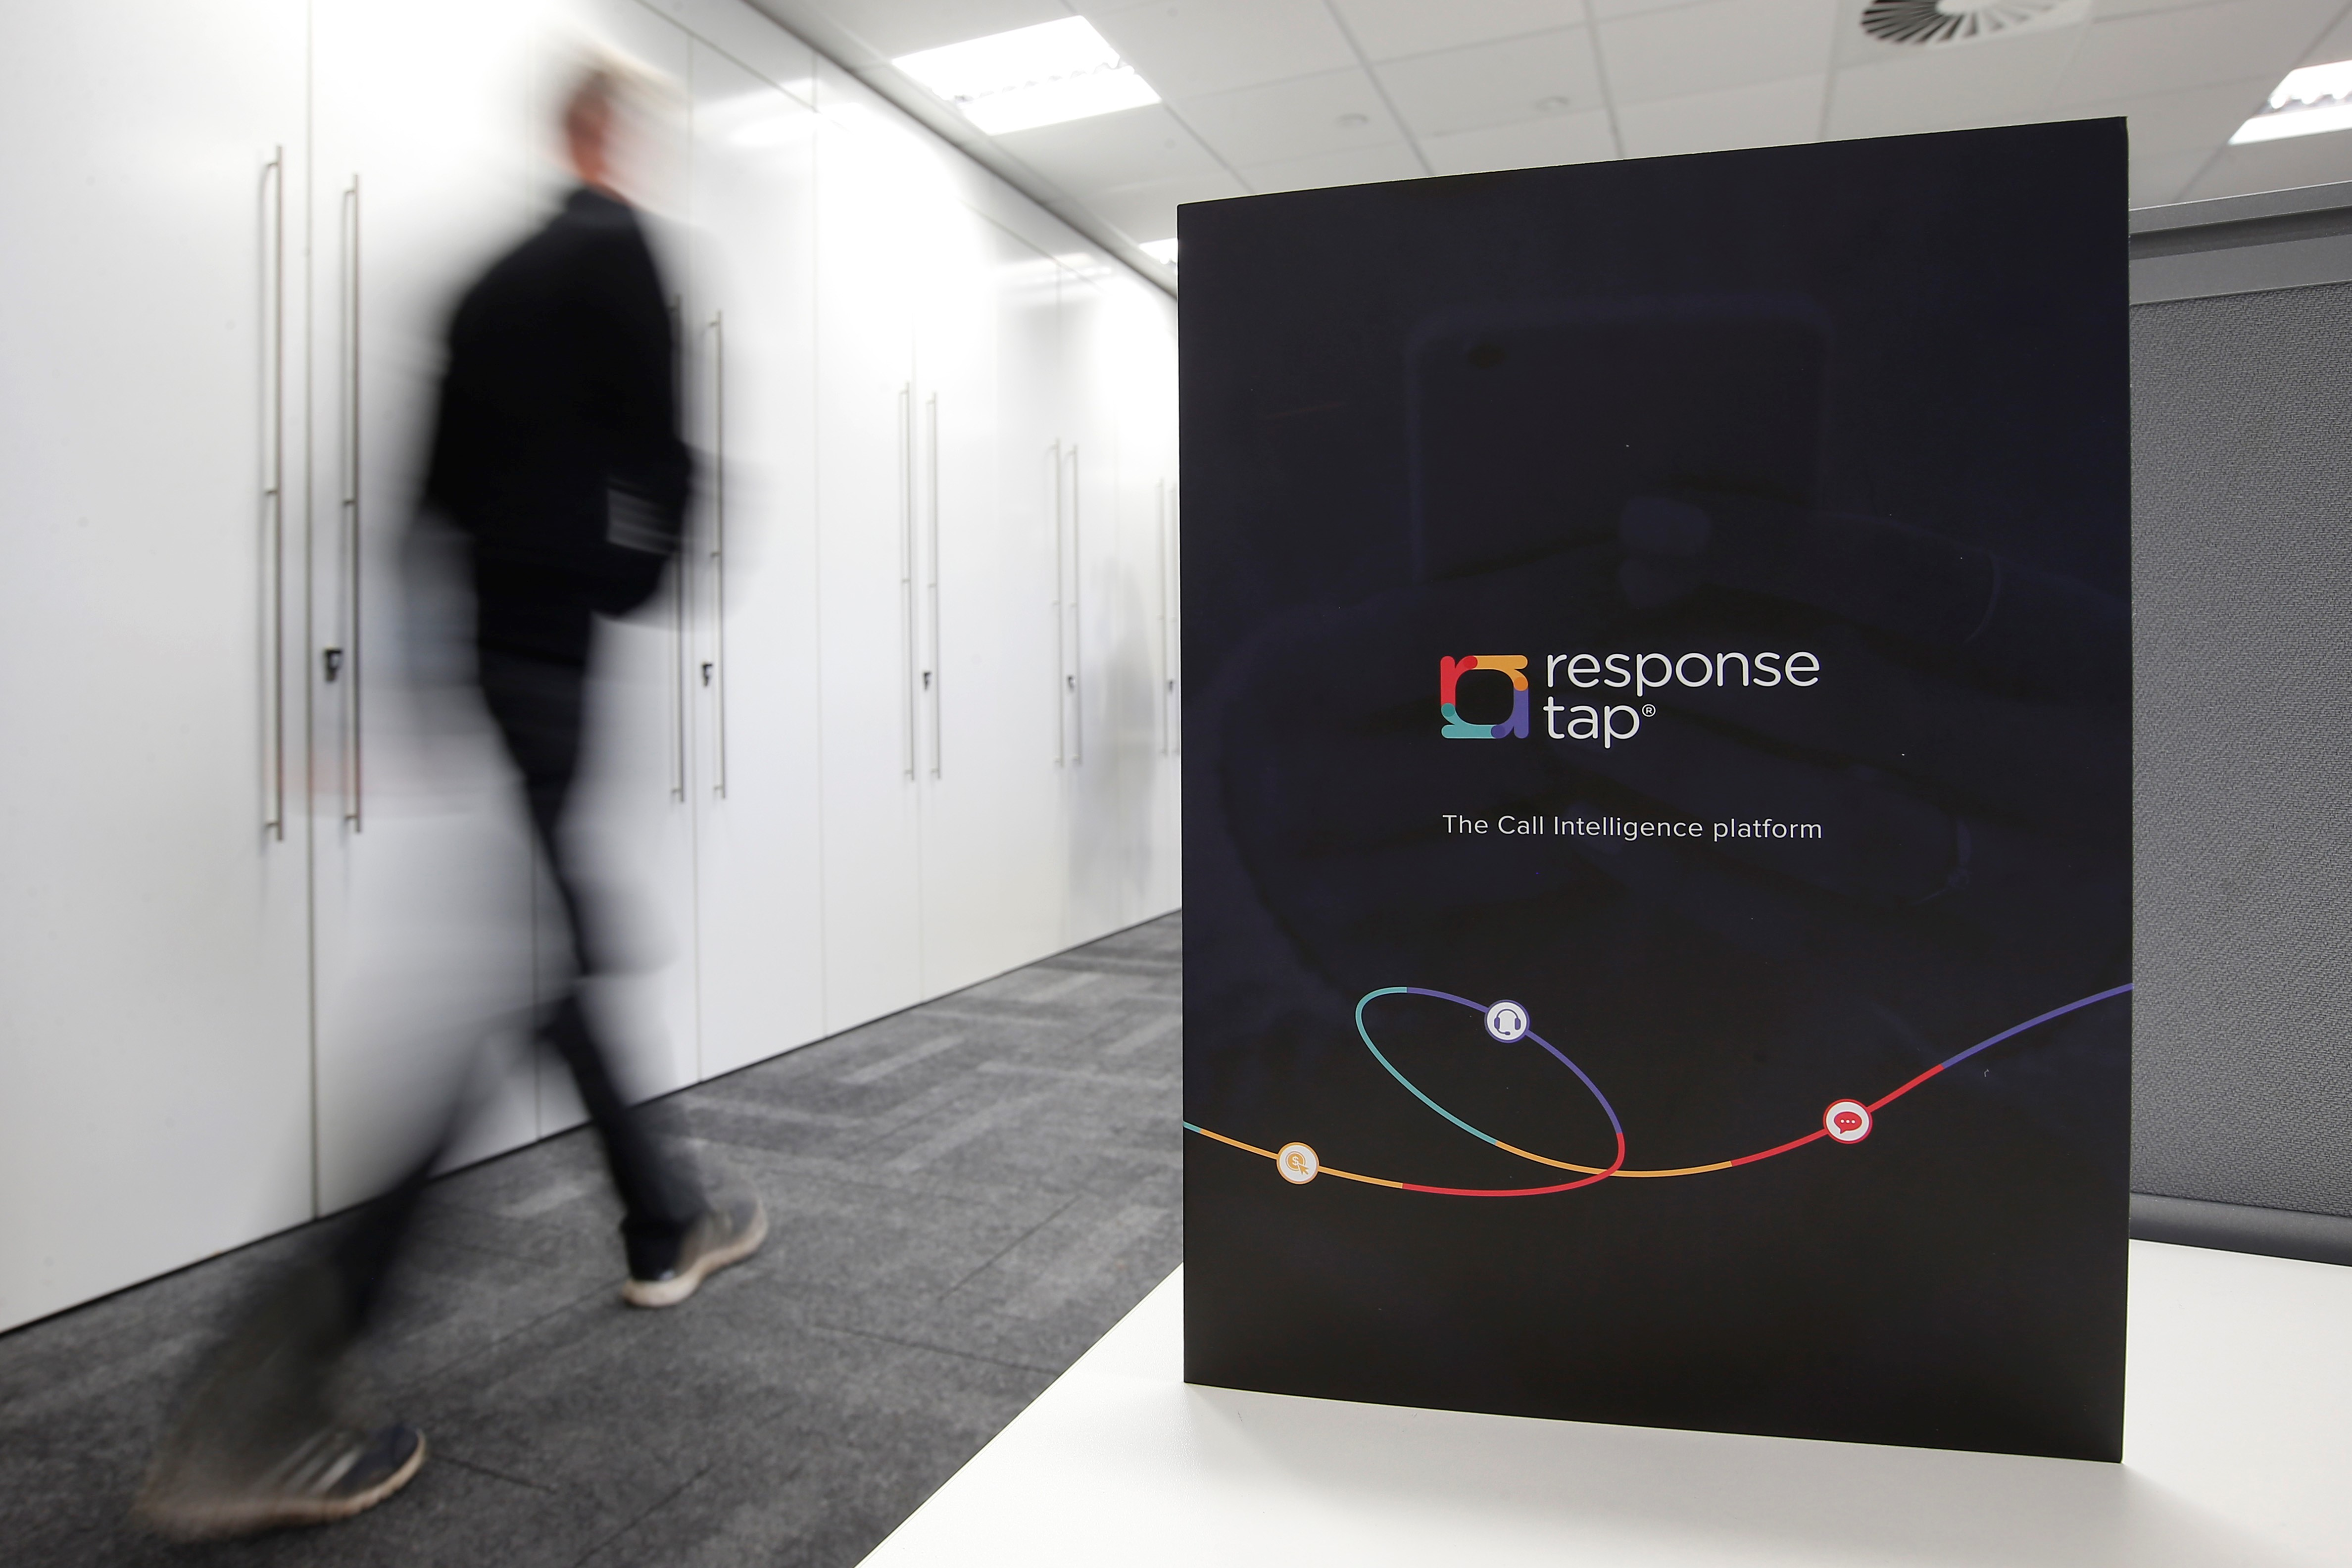 ResponseTap Appoints David Turneras the New VP of Engineering